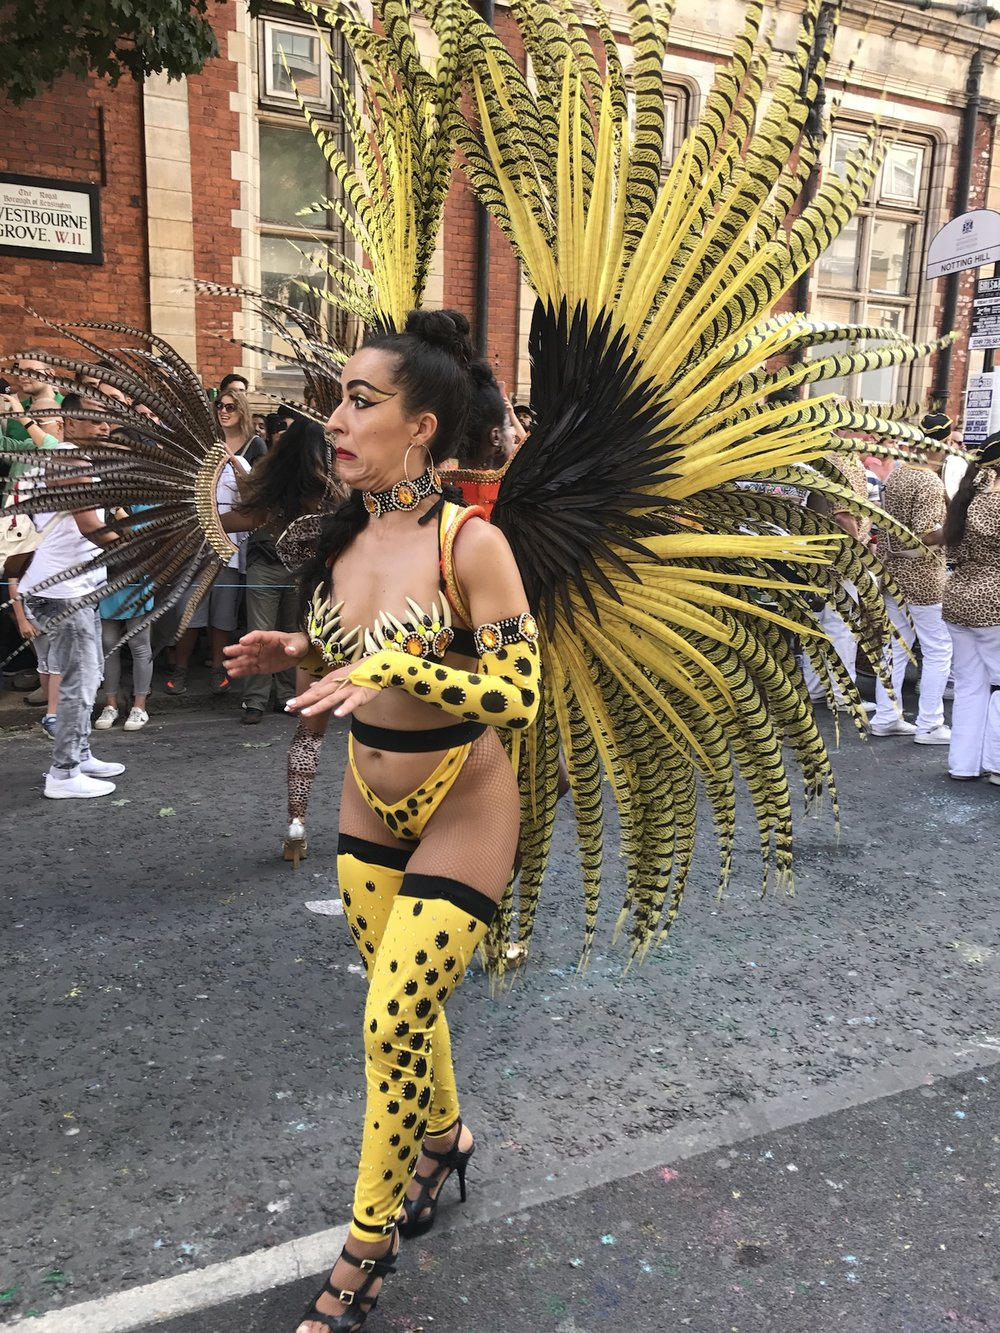 Carnival Goer in Yellow.JPG